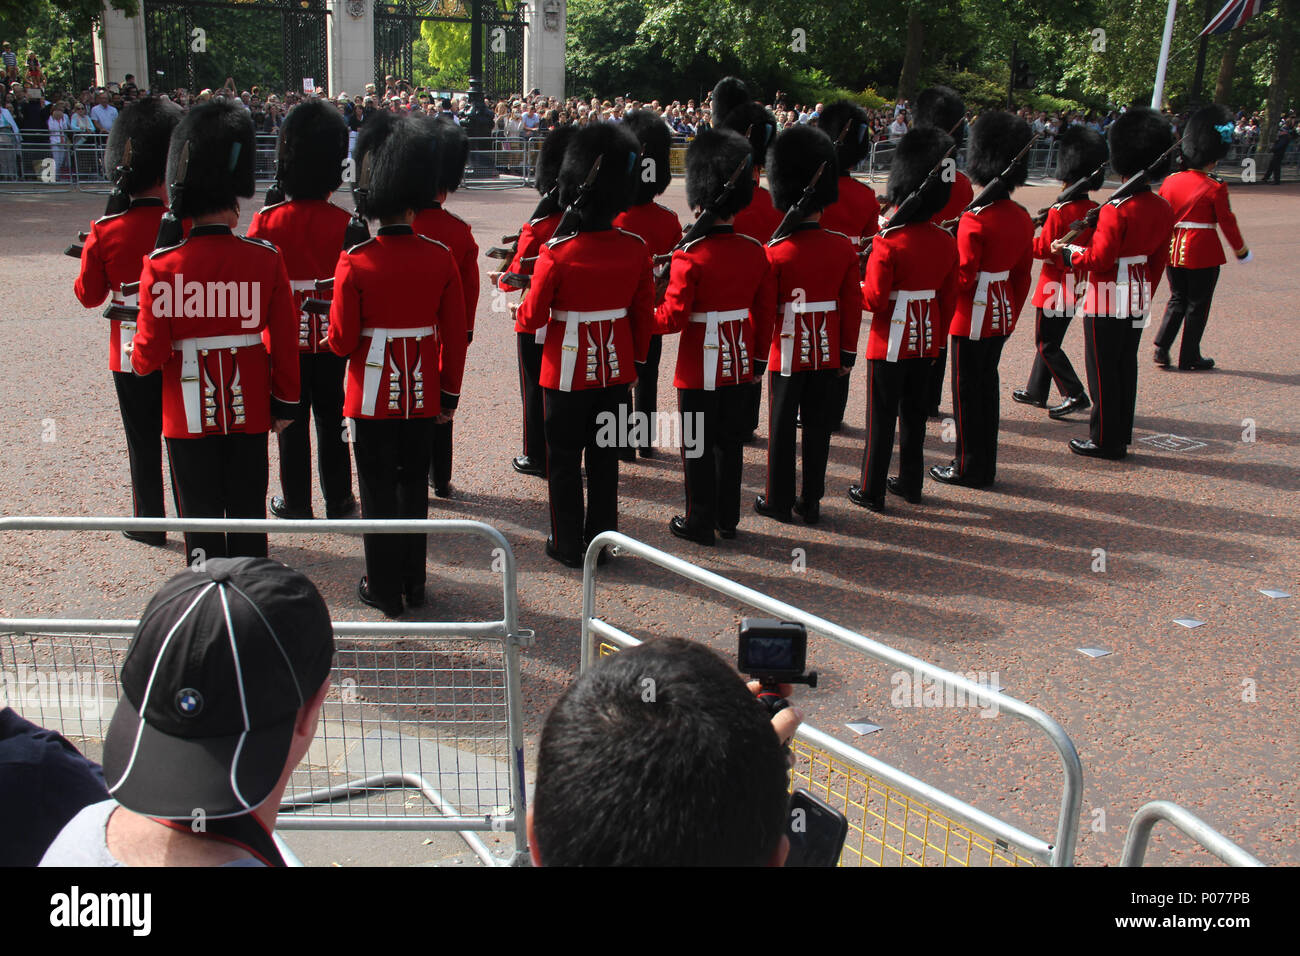 London, UK 9 June 2018: Hundreds of Guardsmen march along the Mall to the Horse Guards Parade Ground as they make their way to the Horse Guards Parade Ground on 9 June 2018. Over 1400 parading soldiers, 200 horses and 400 musicians come together each June in a great display of military precision, horsemanship and fanfare to mark The Queen's official birthday. Credit: David Mbiyu - Stock Image